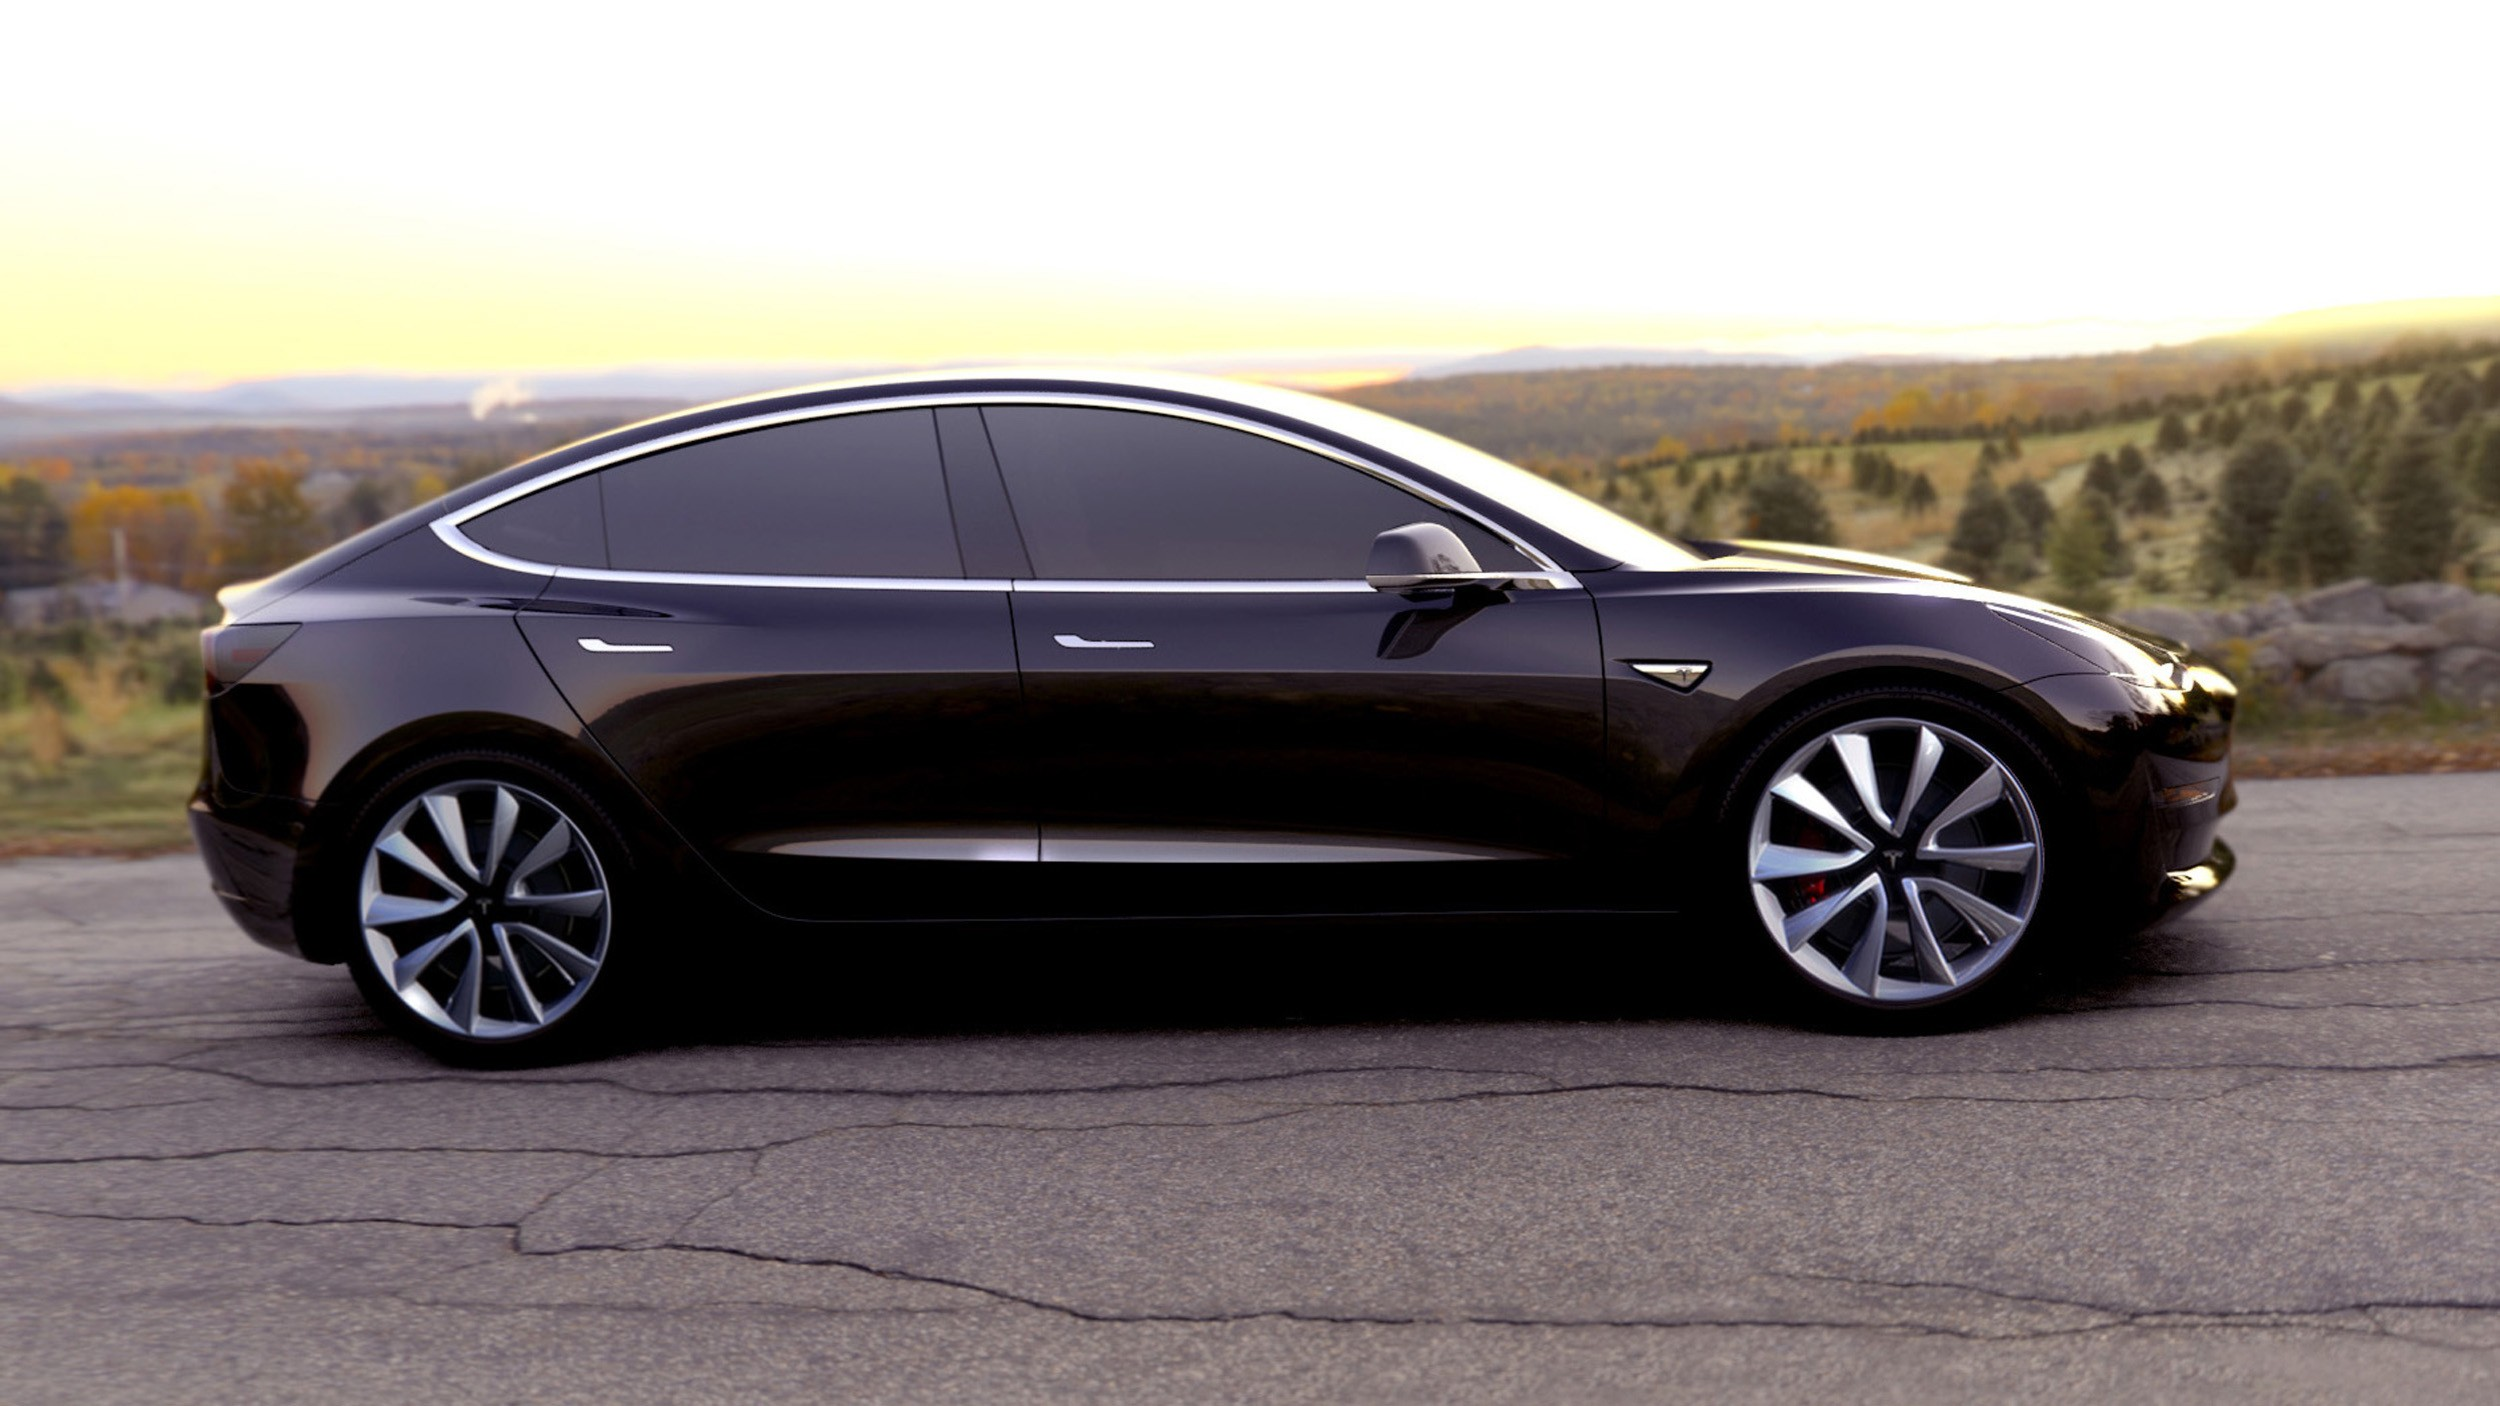 Tesla Reportedly Talking To Suppliers To Buy More Batteries